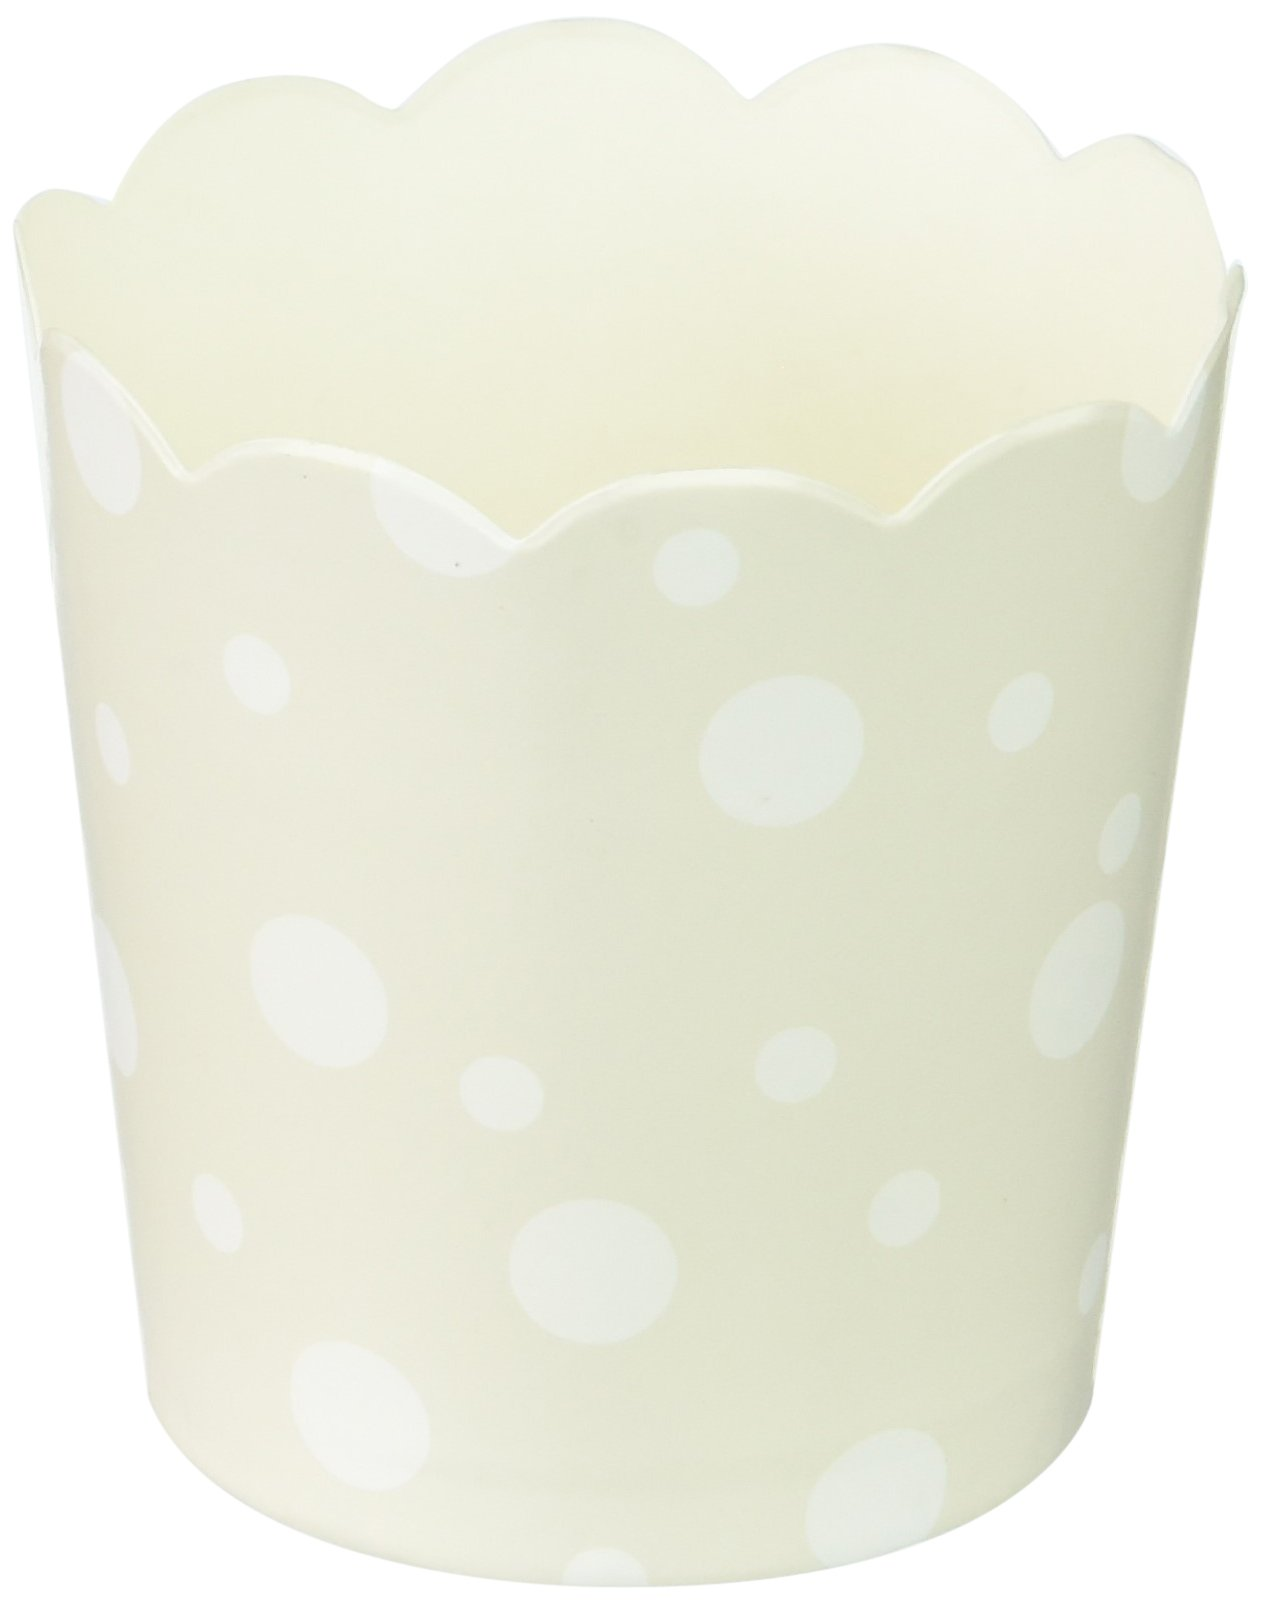 Simply Baked CPT-108 Paper Baking Cup, 20-Pack, Pearl Dot